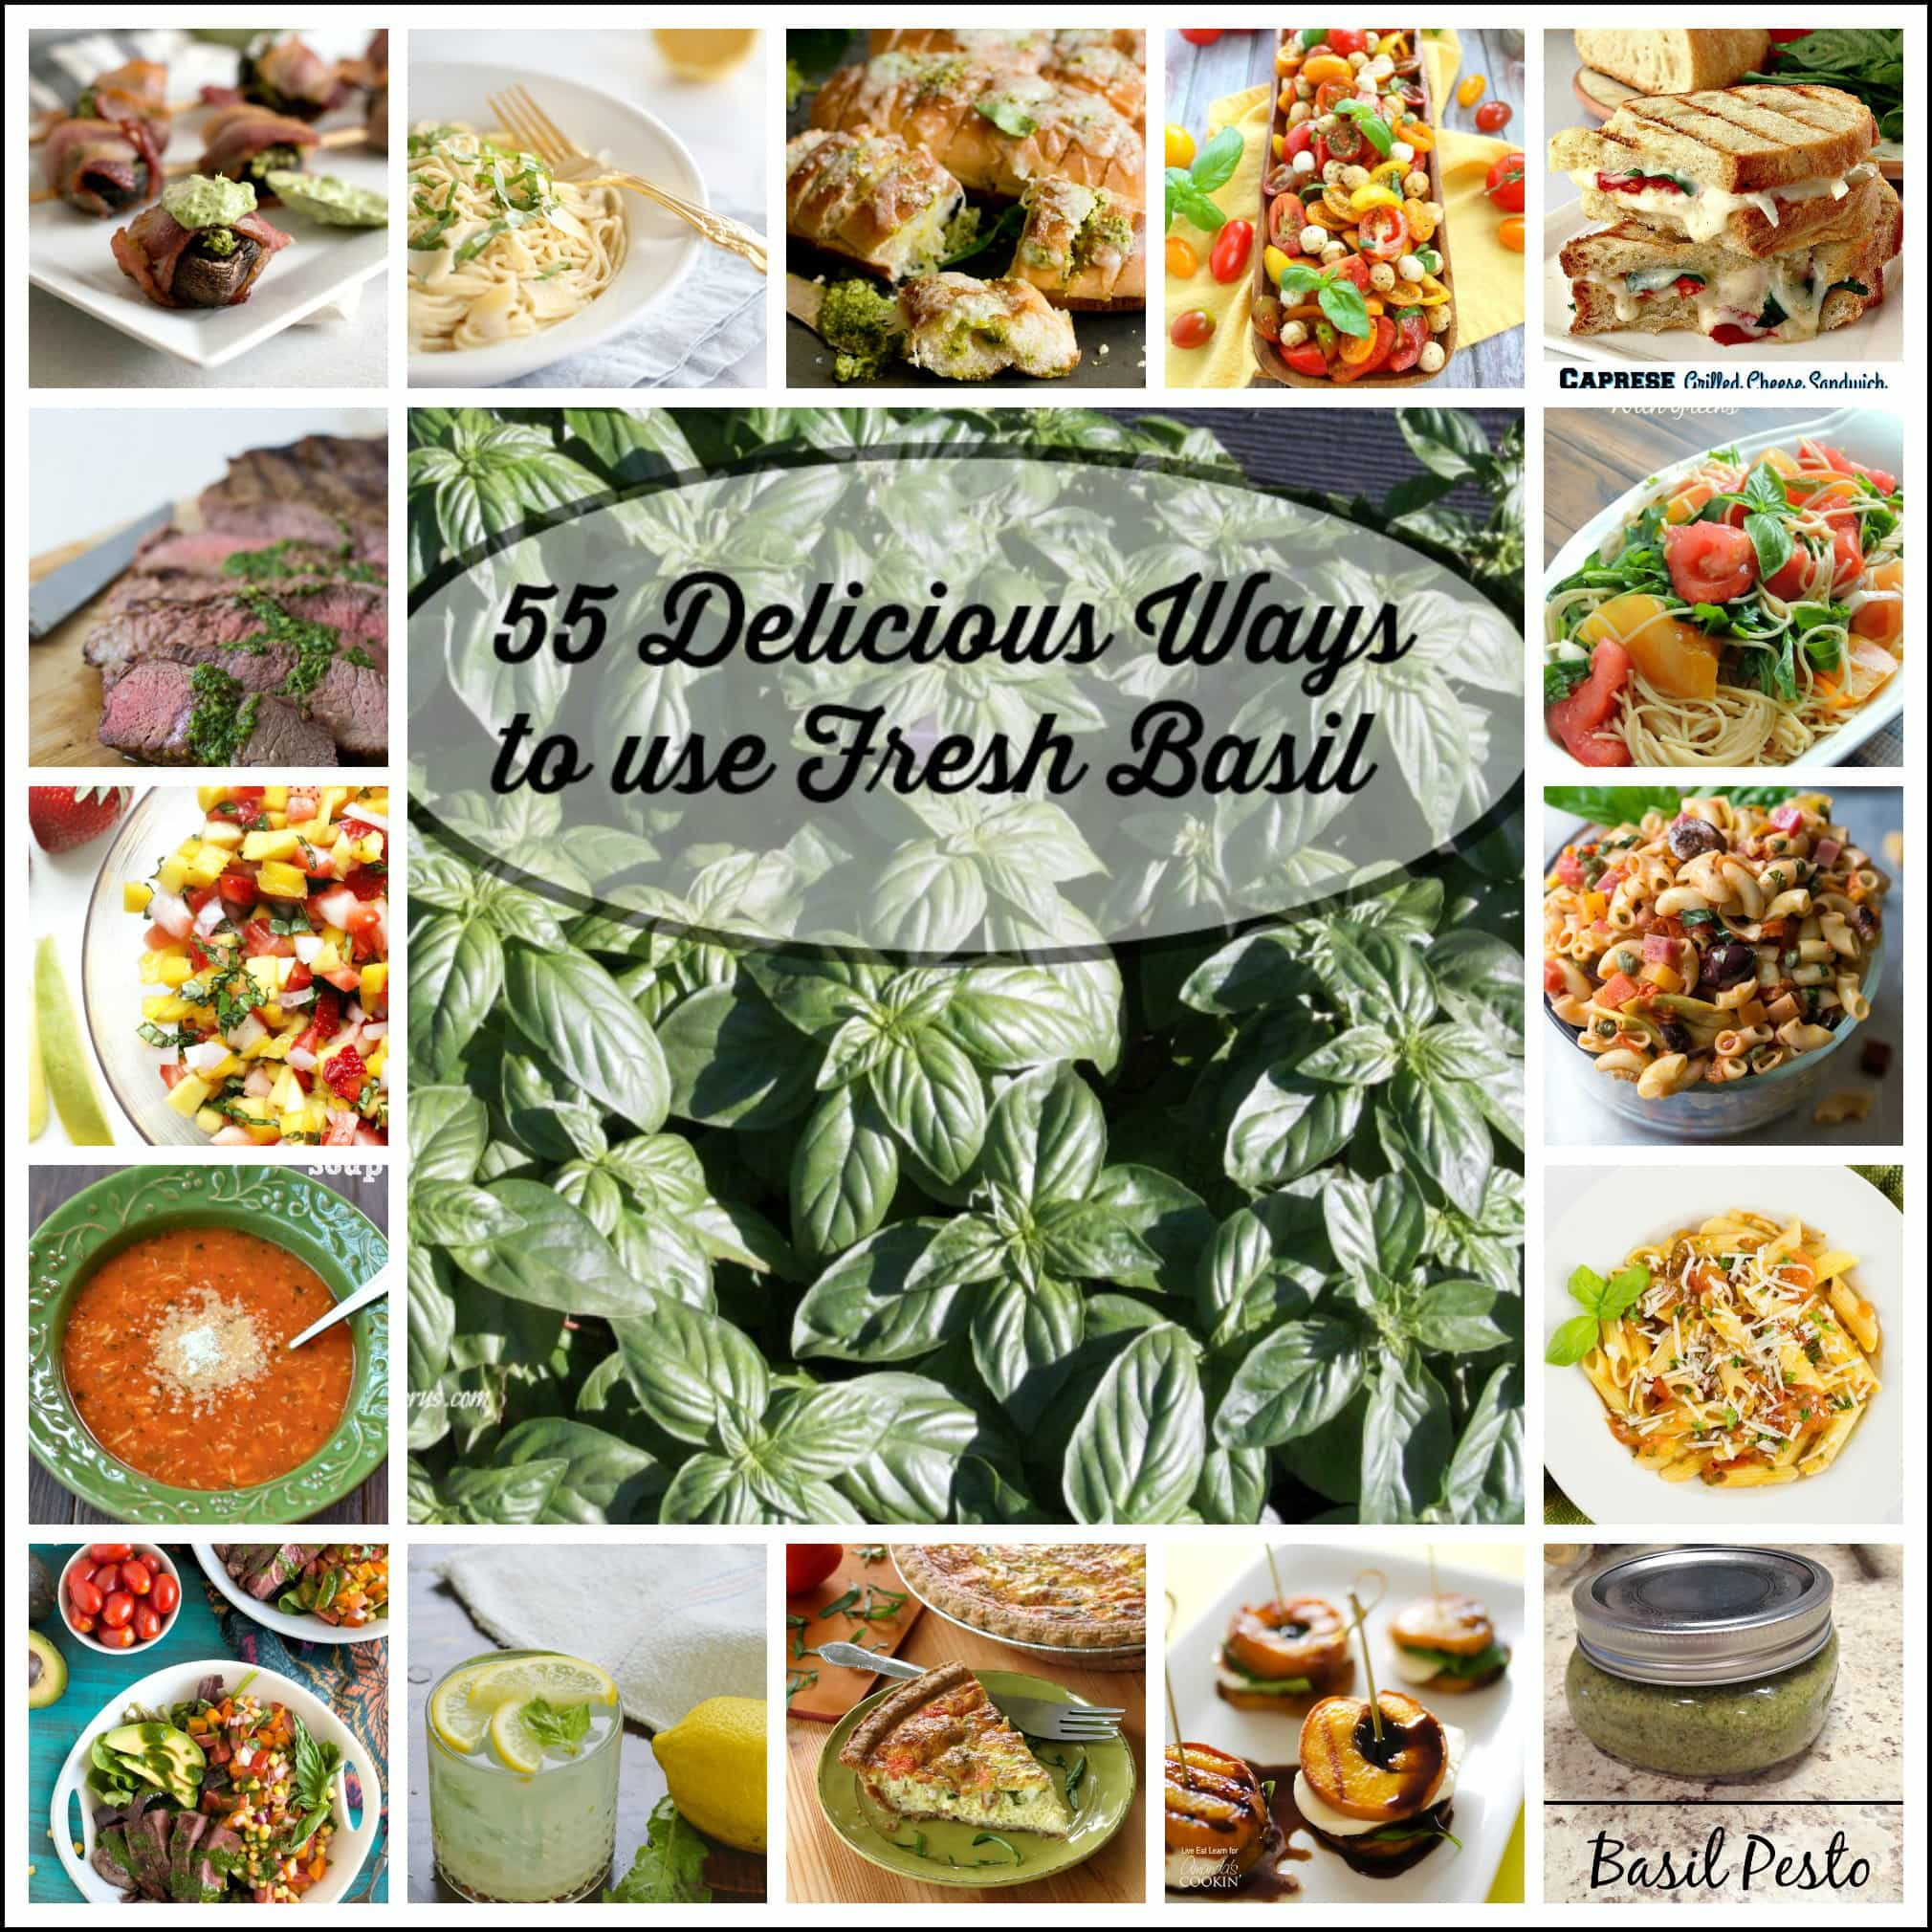 over 55 different sweet basil recipes that use fresh basil